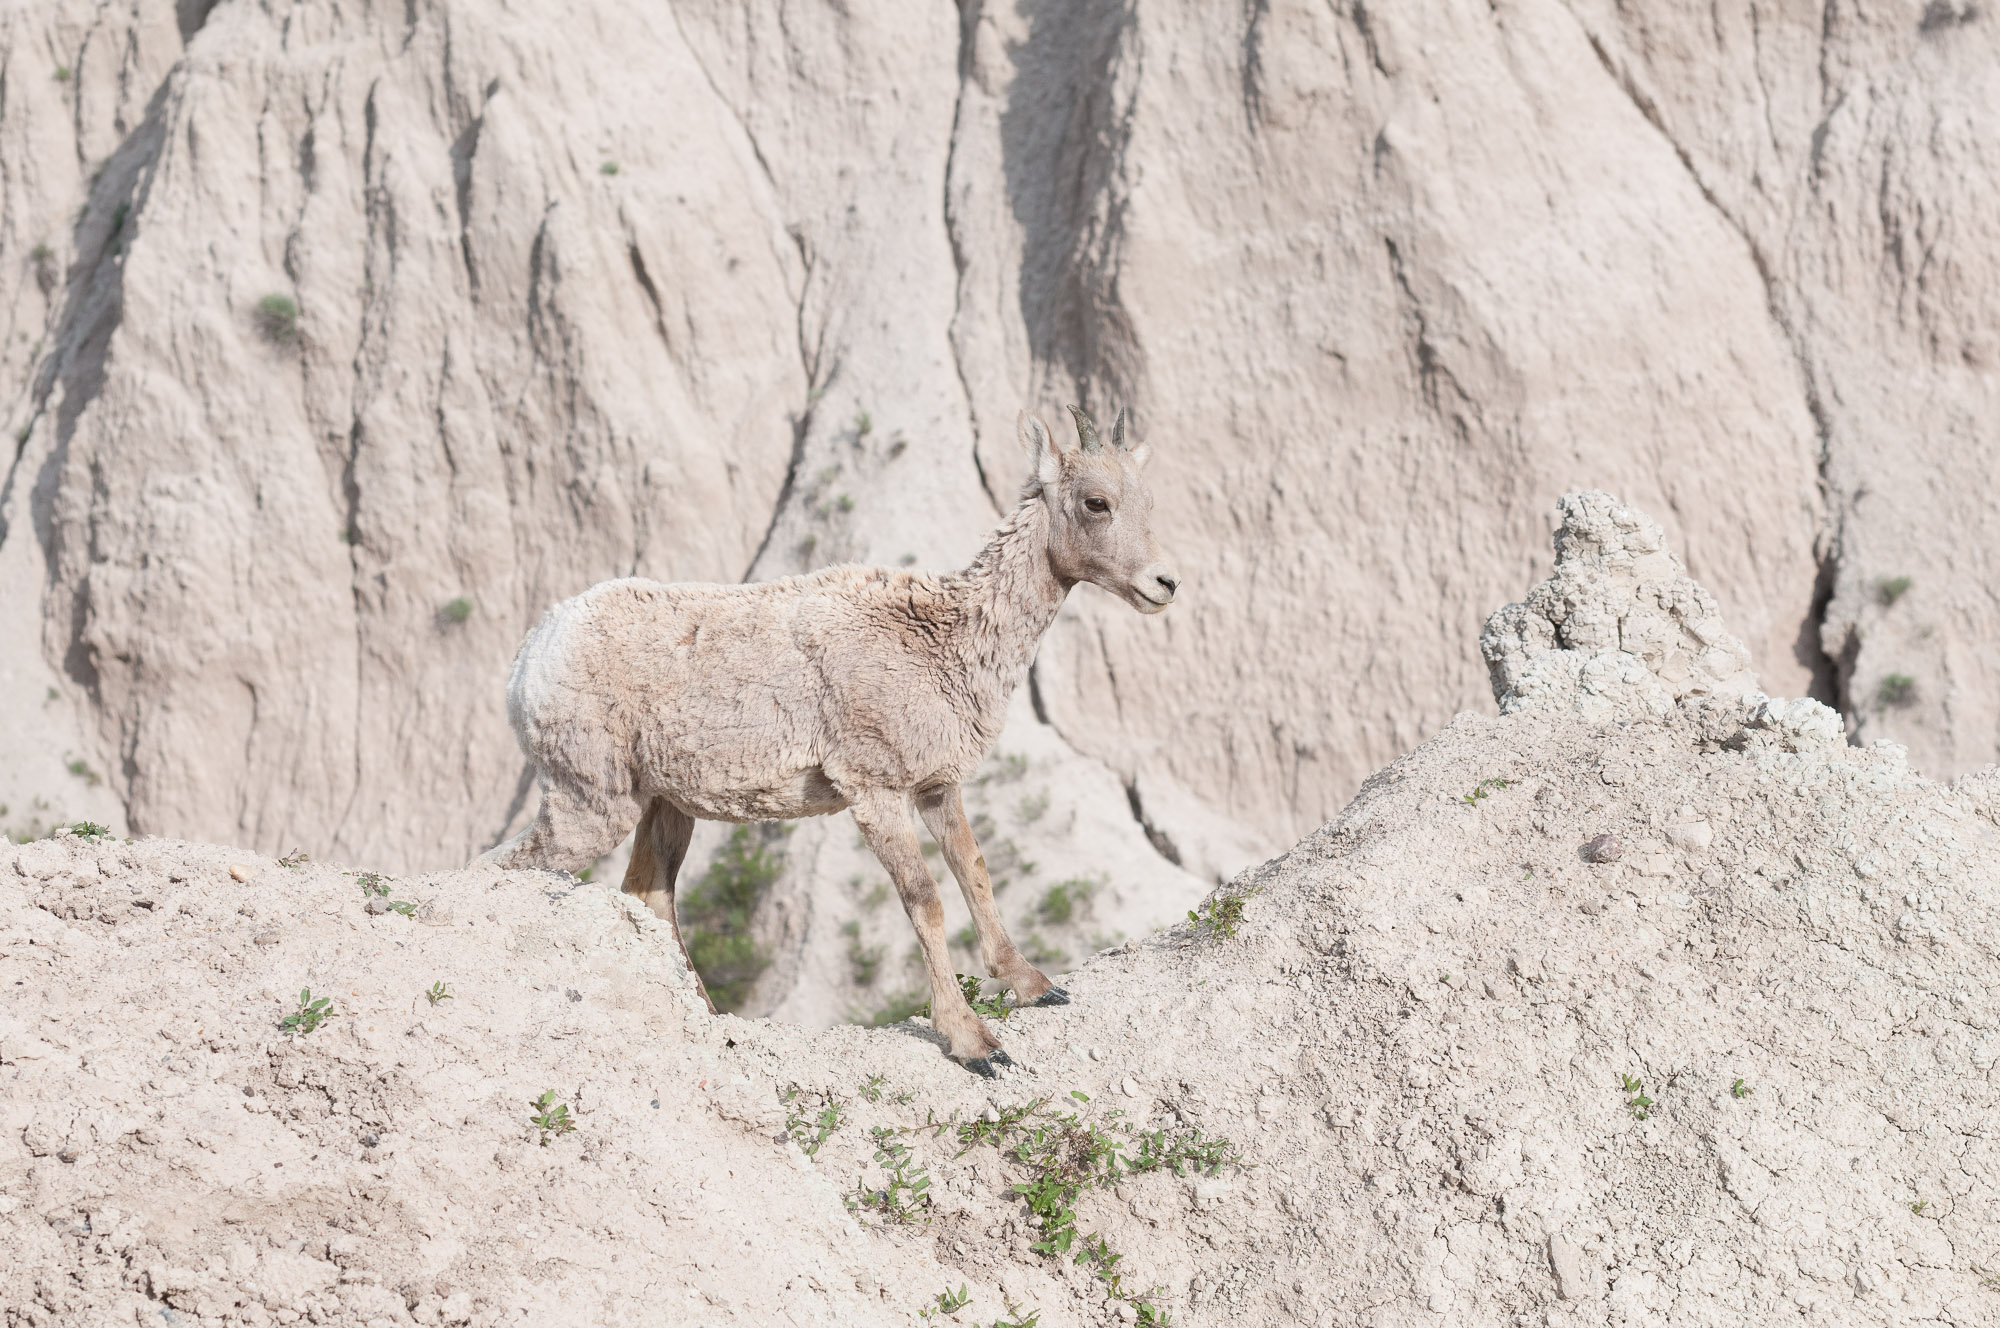 Well-camouflaged Bighorn Sheep lamb - Badlands National Park, South Dakota